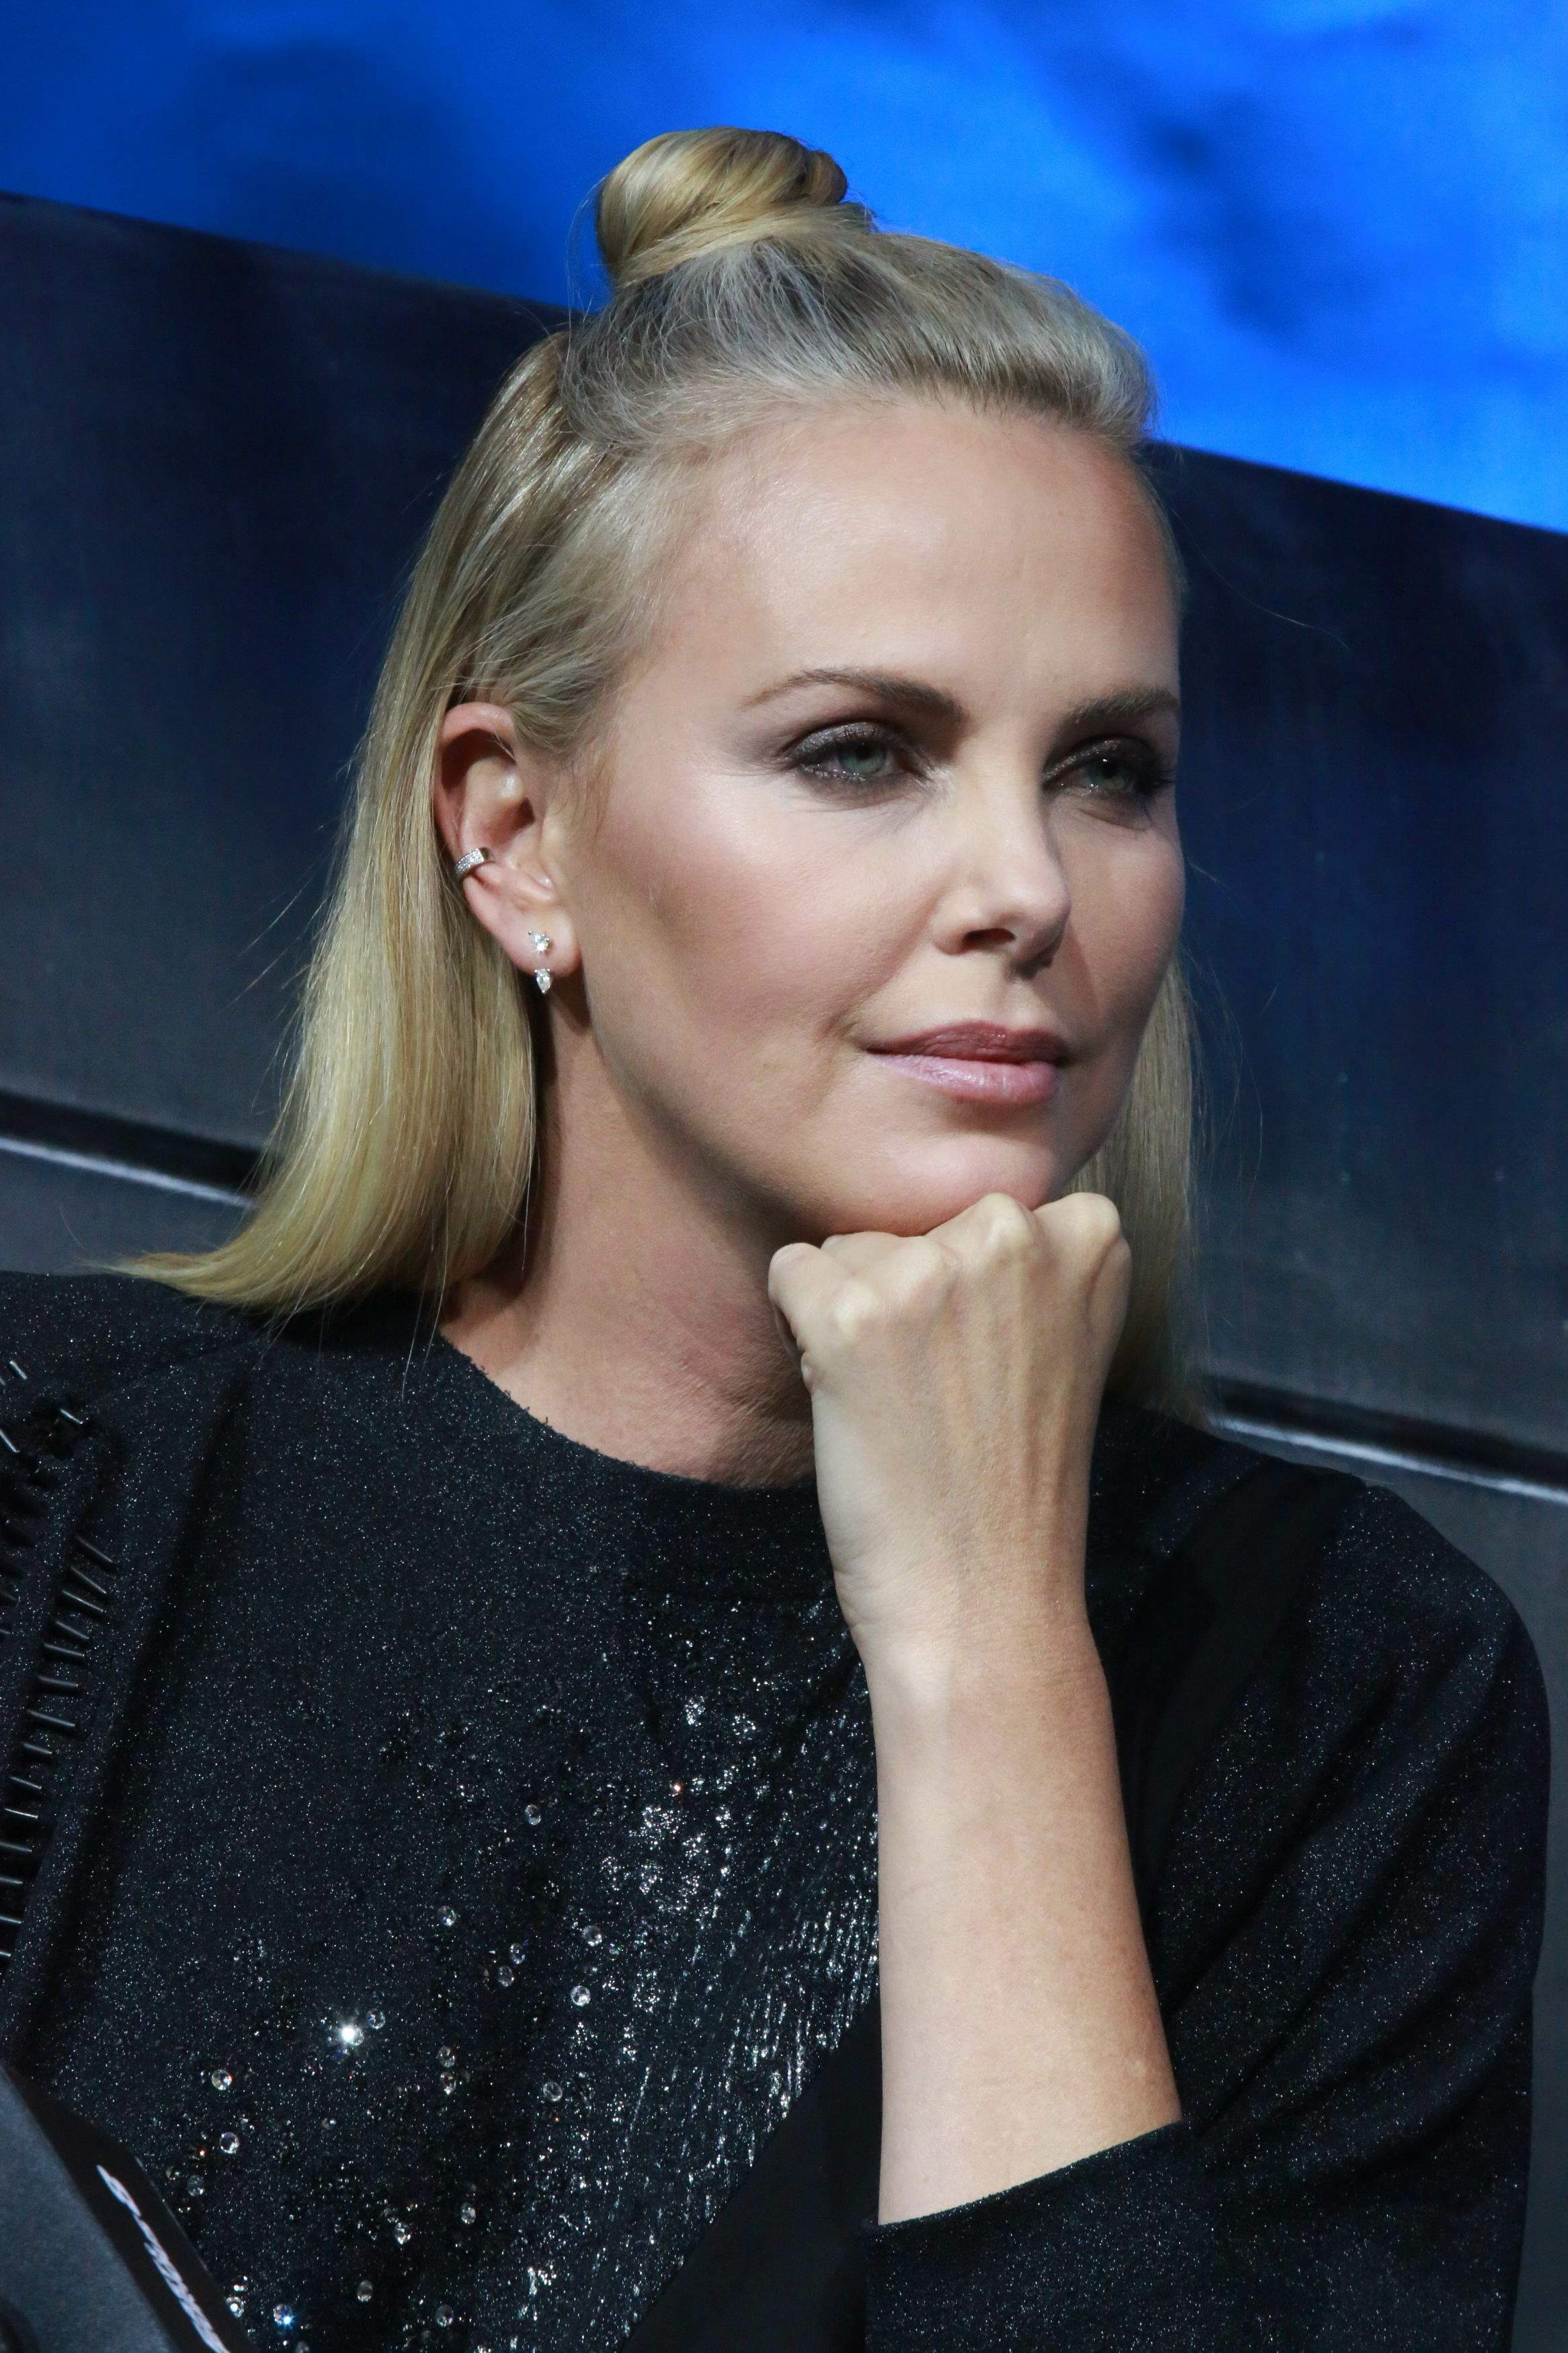 charlize theron - photo #28